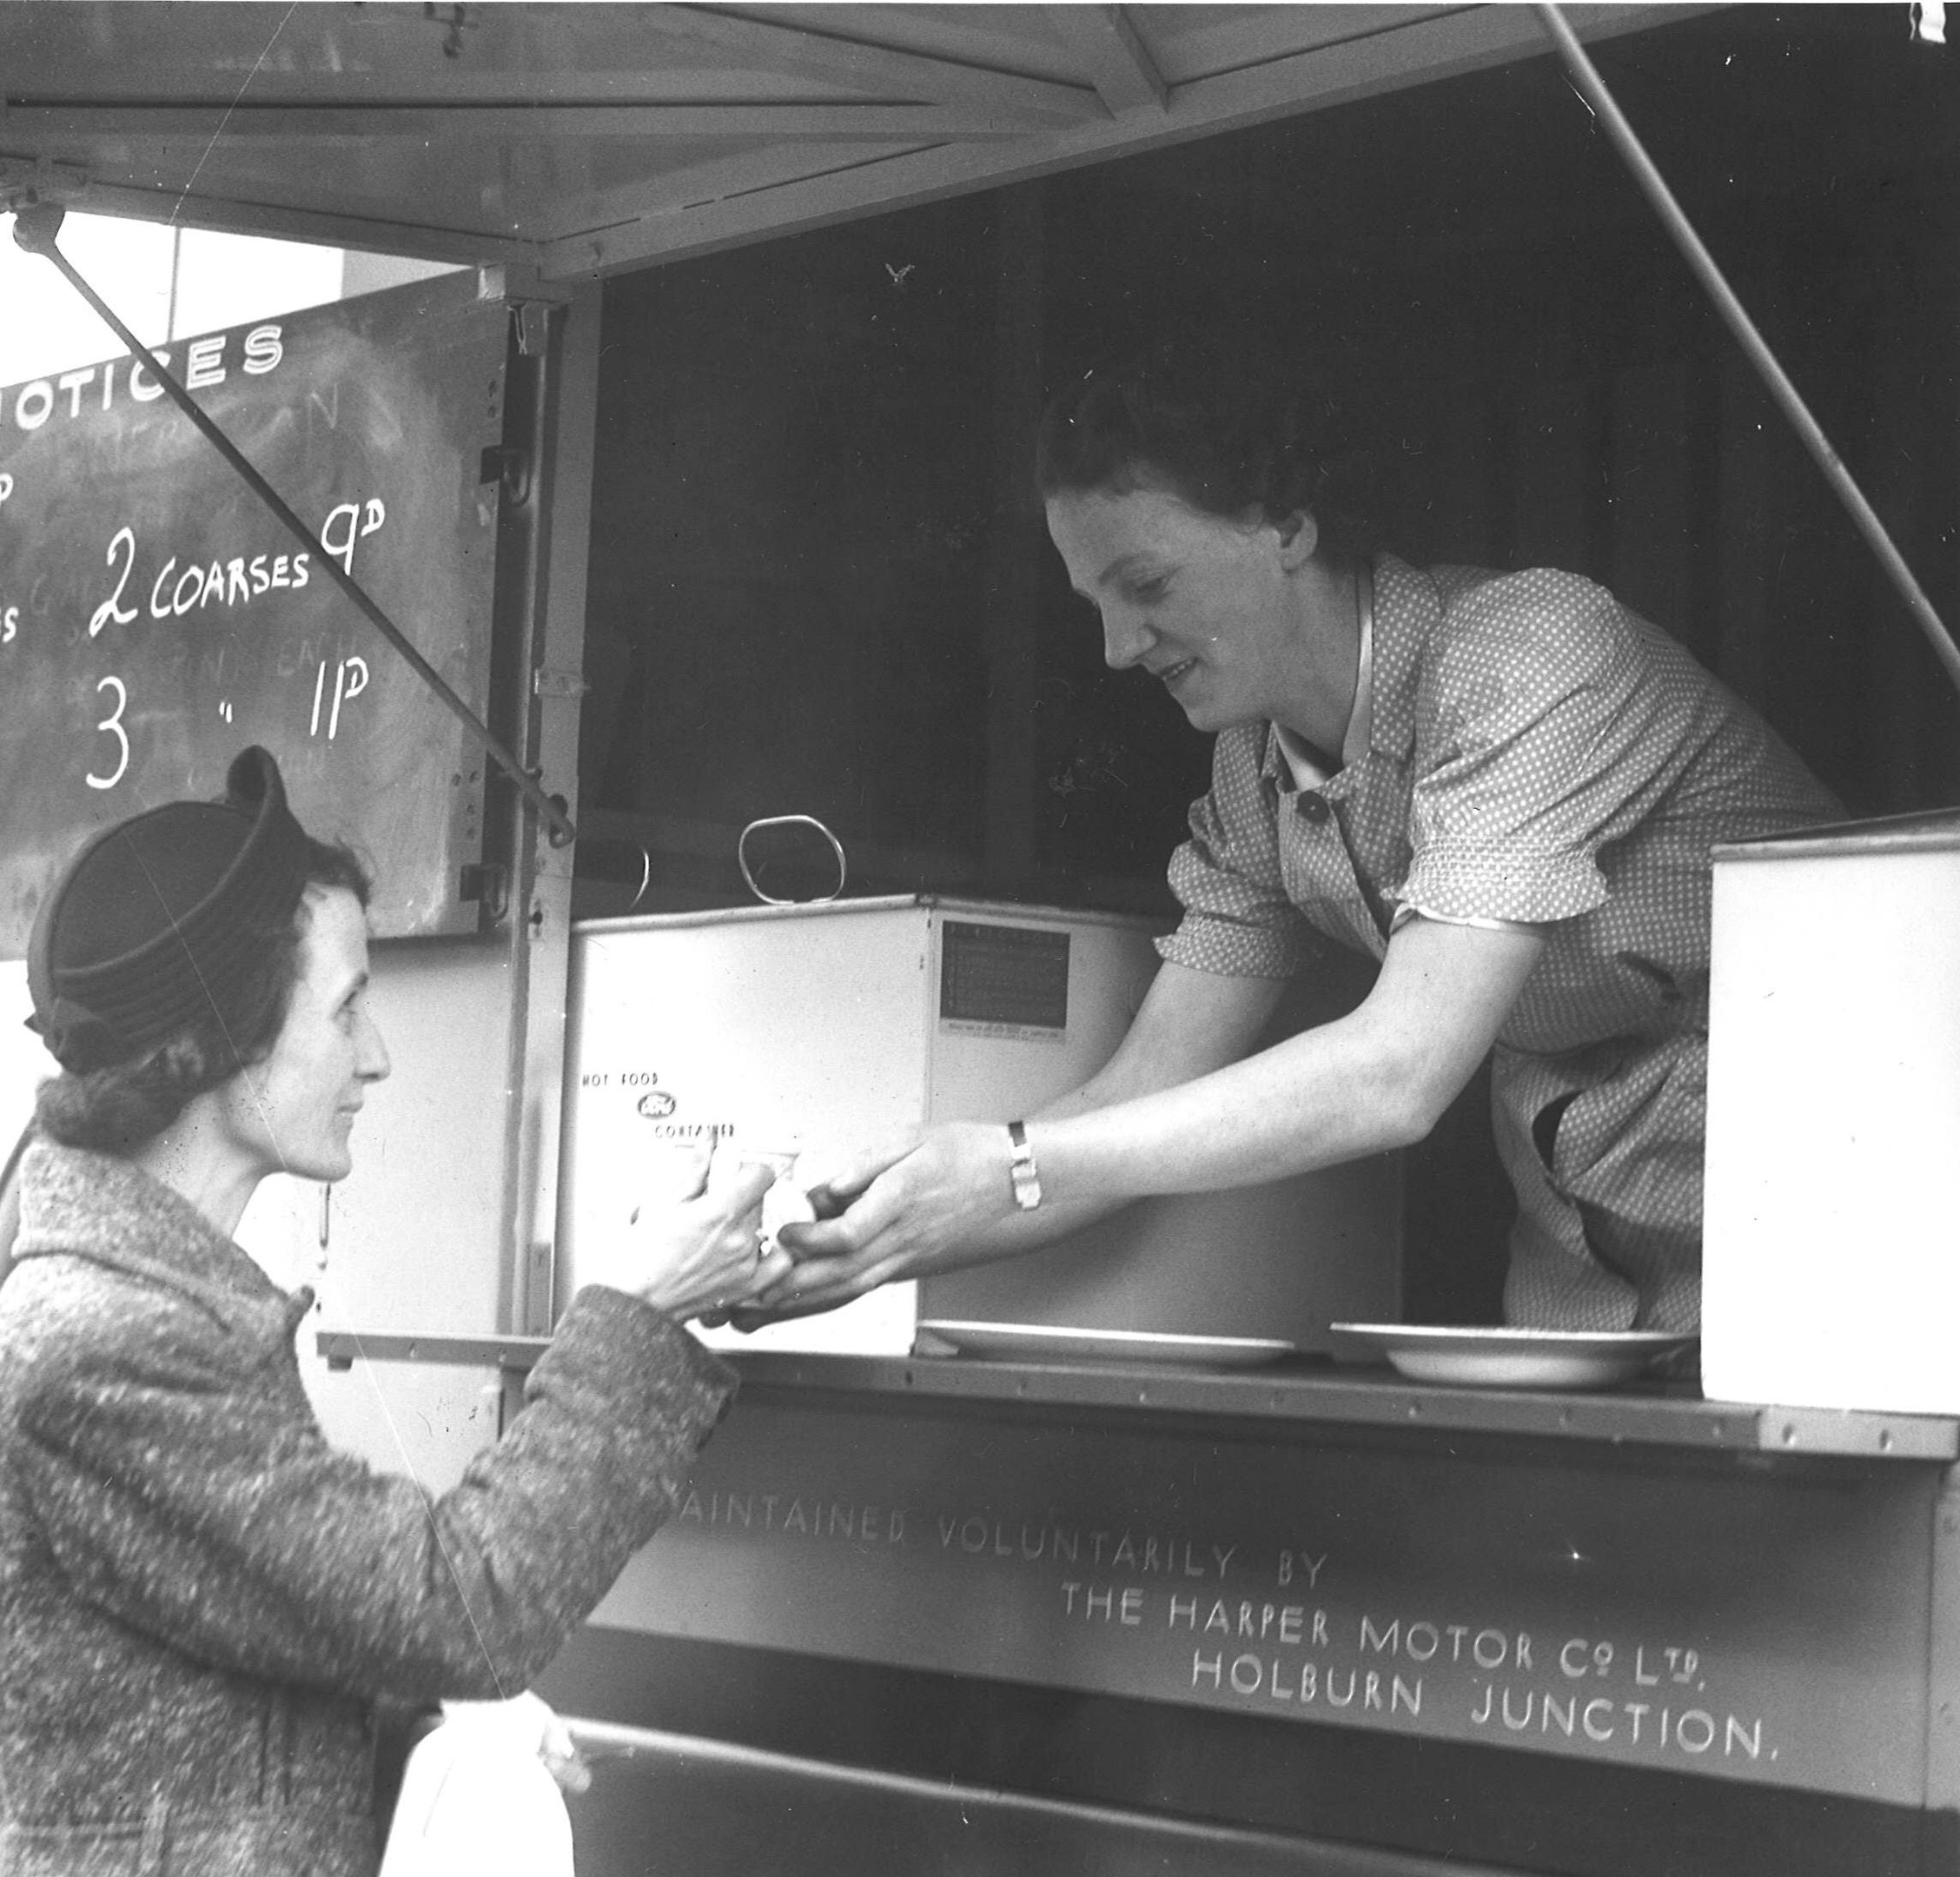 A restaurant van in Ruhrieson, March 1942